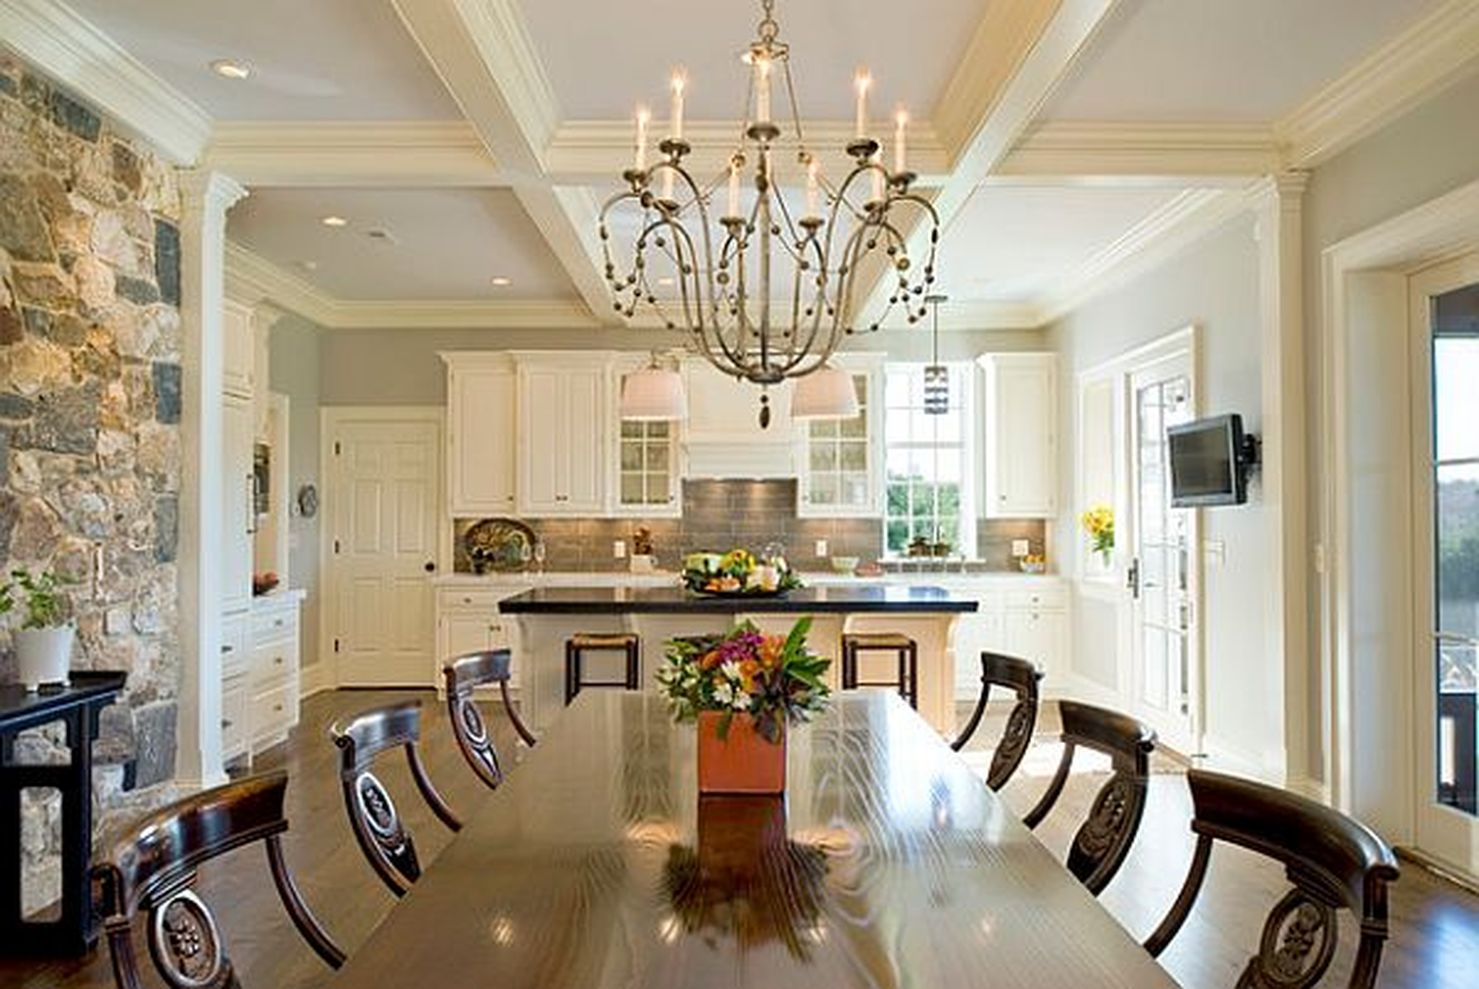 65 amazing dining room lights ideas for low ceilings for Dining room lighting ideas